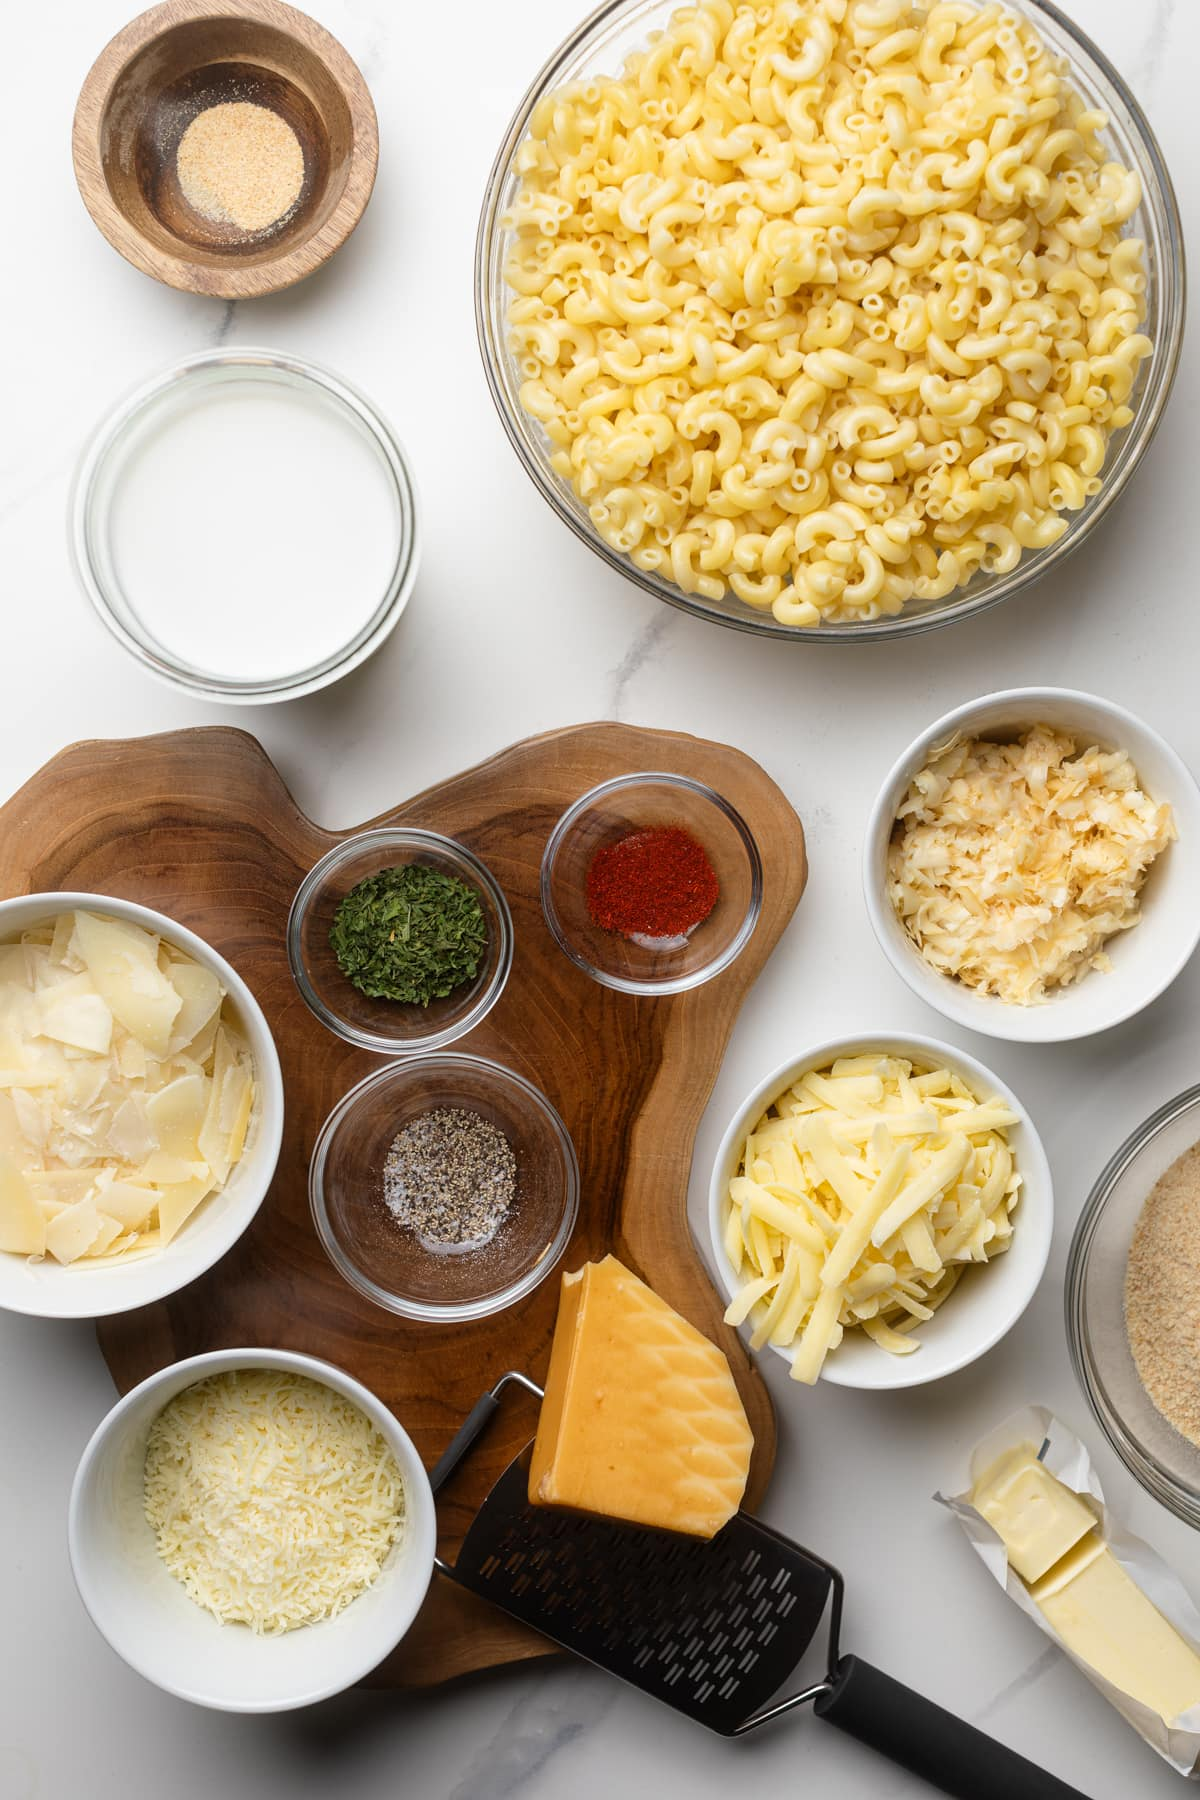 ingredients for Southern Baked Mac and Cheese with Breadcrumbs